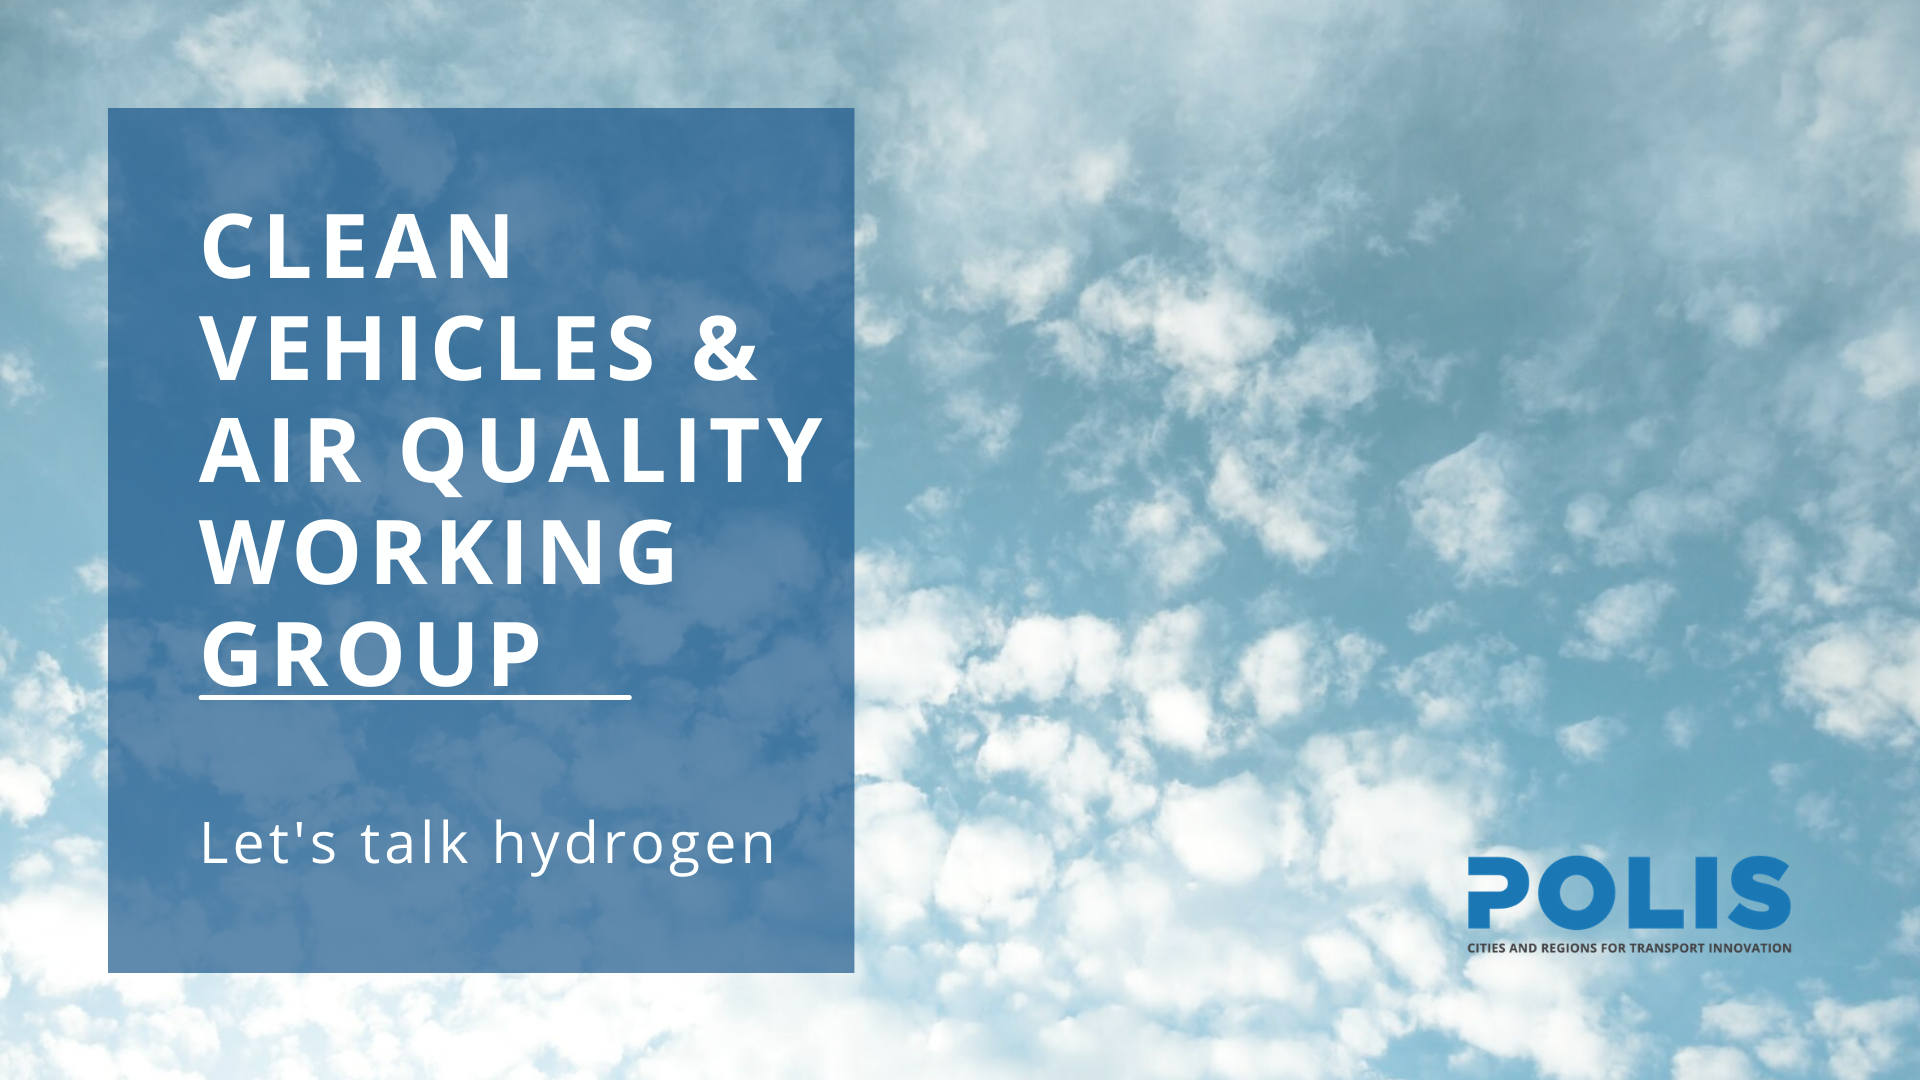 Clean Vehicles & Air Quality Working Group meeting: Let's talk hydrogen